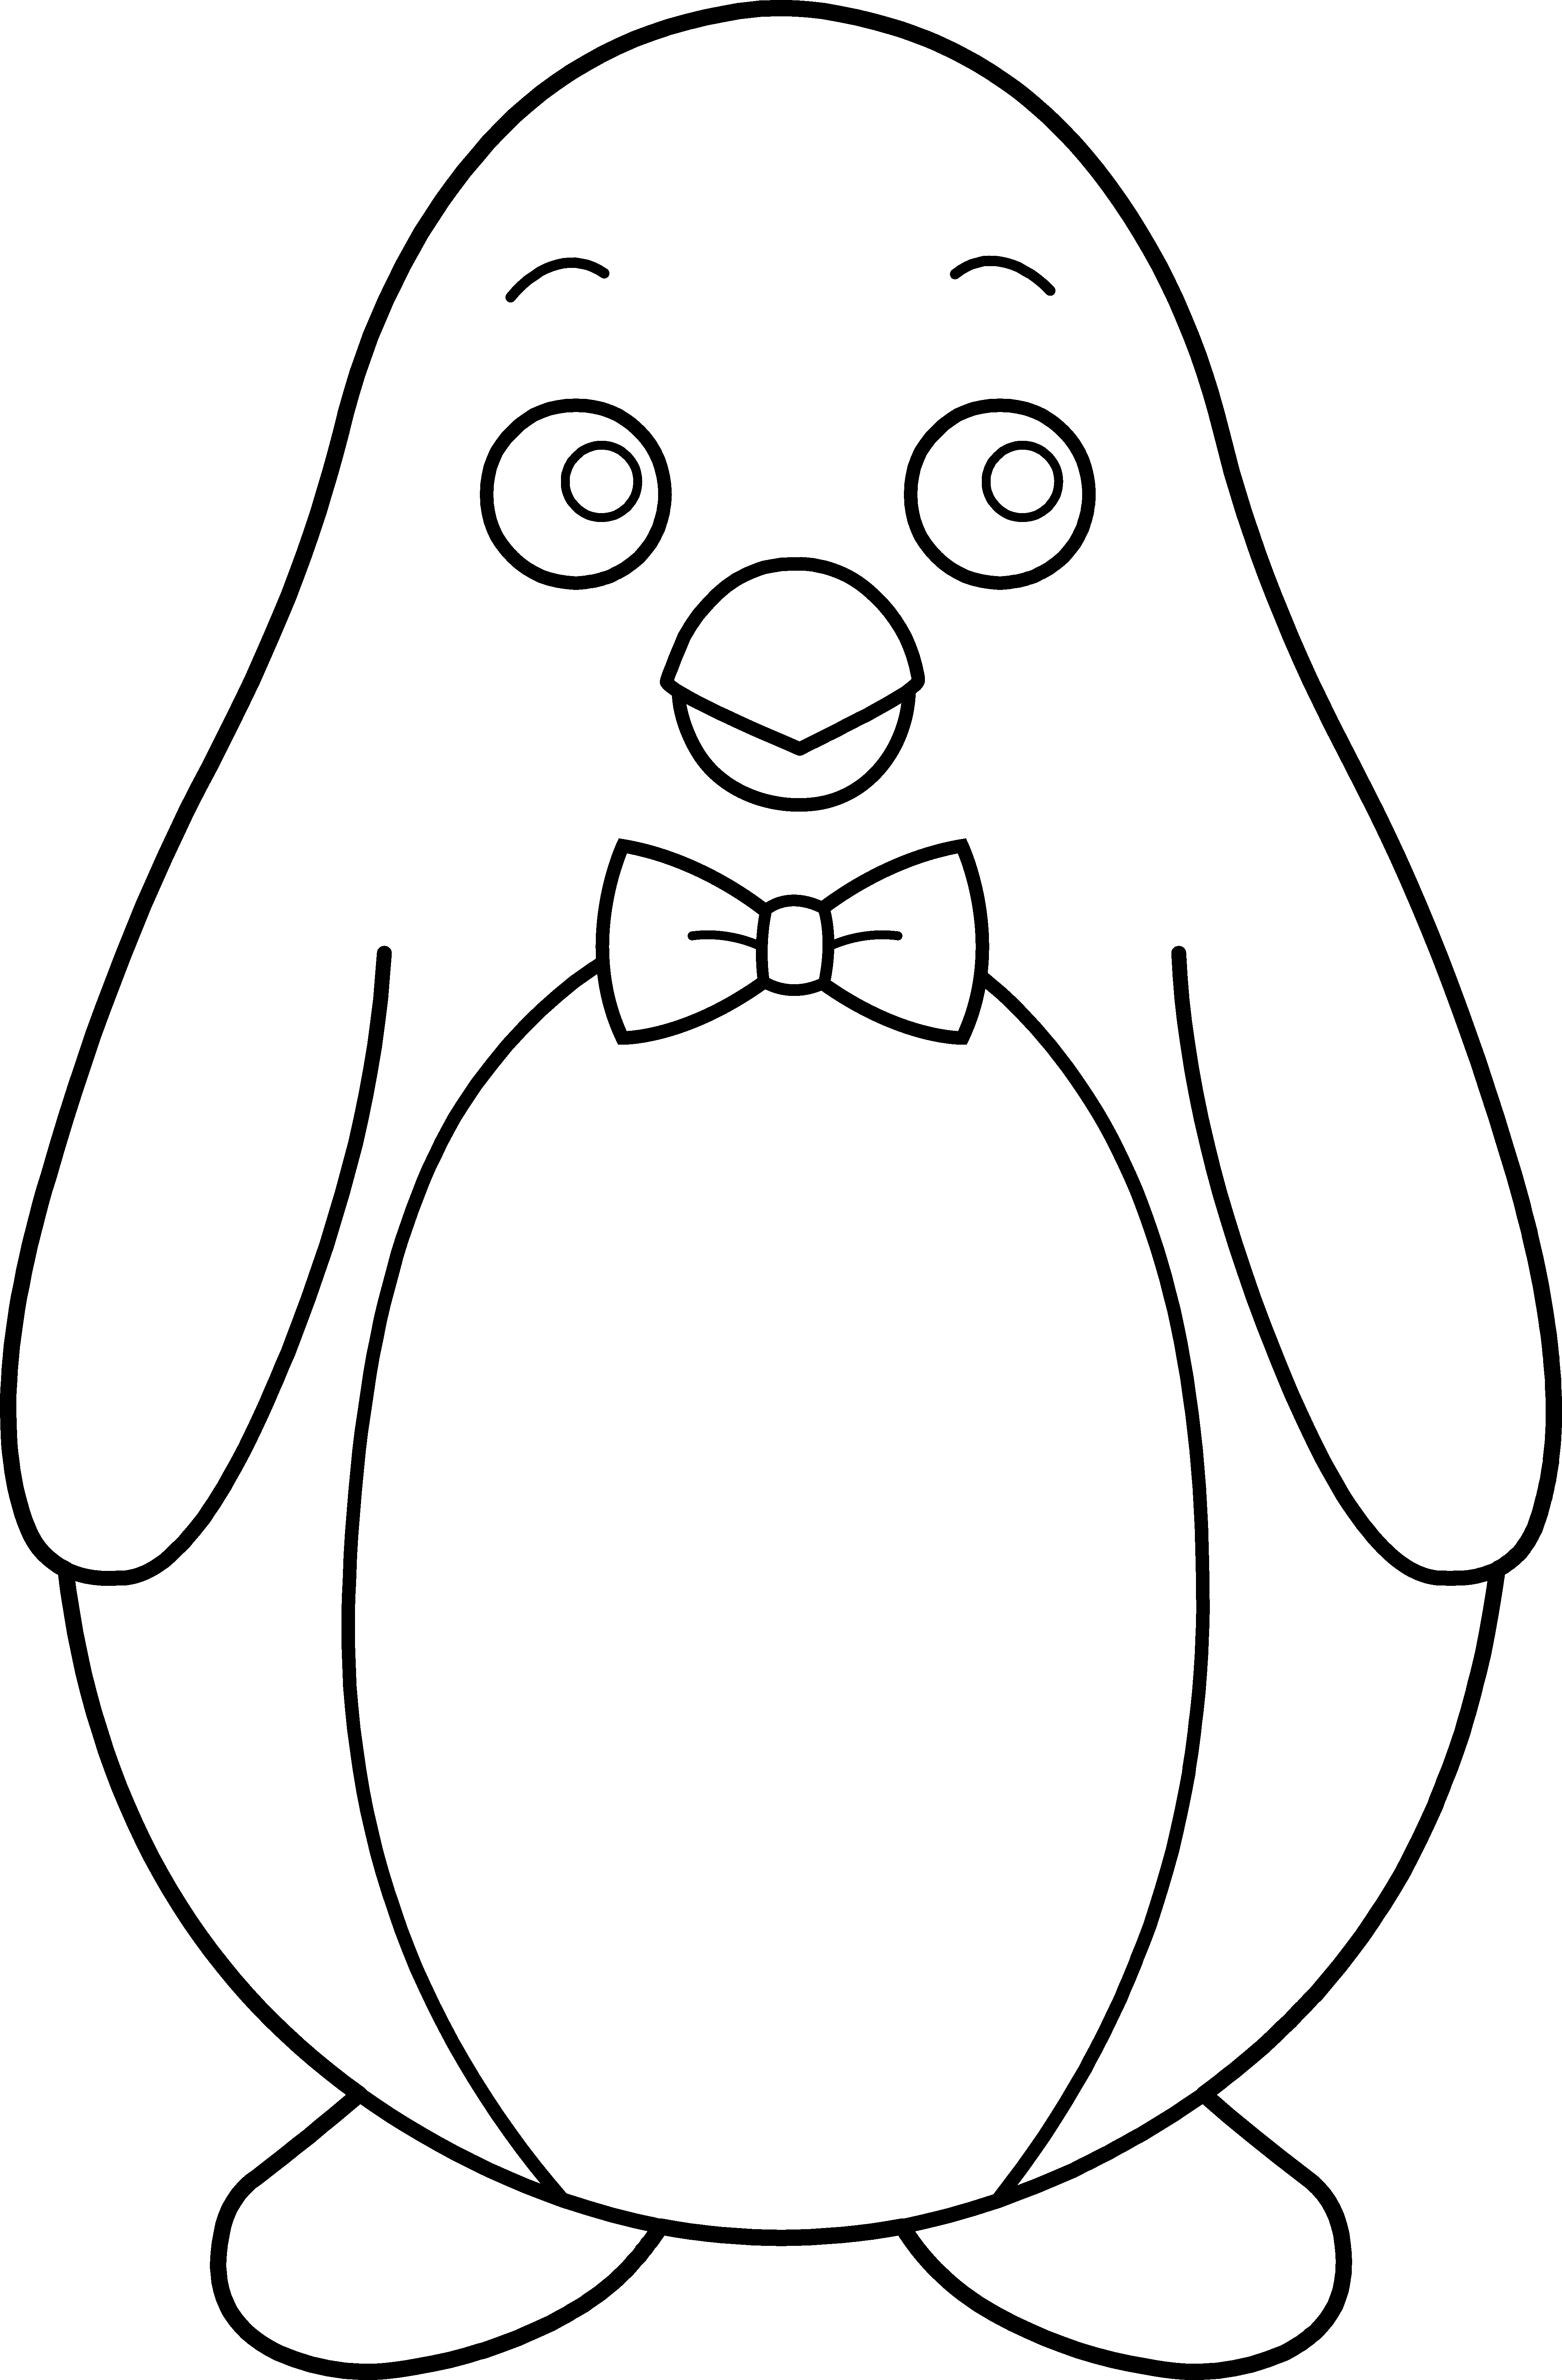 Penguin clipart black and white. Colorable with bow tie